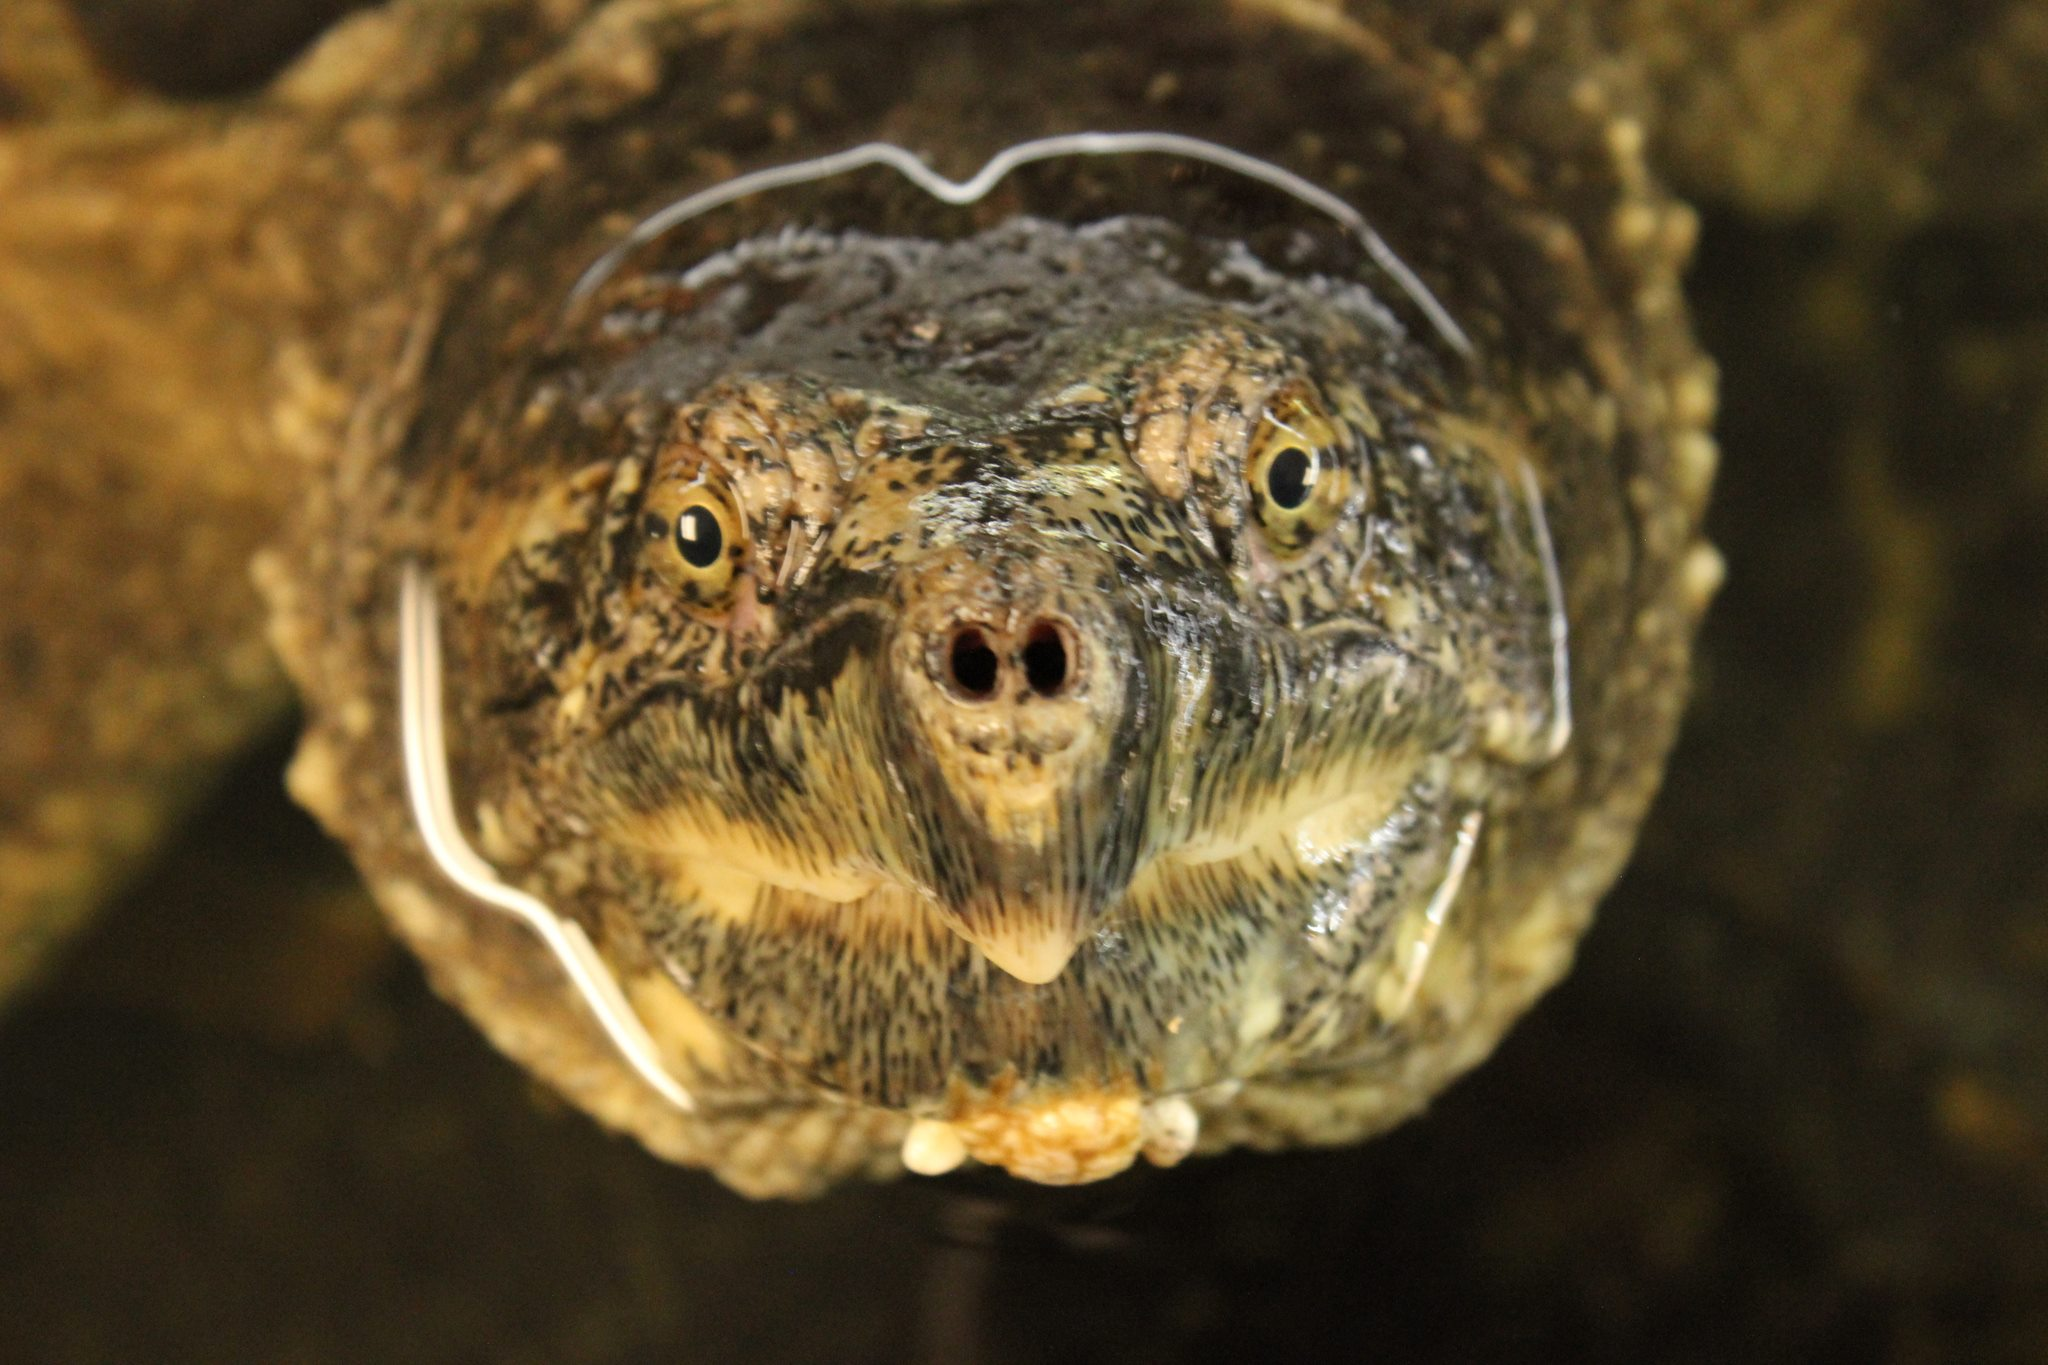 Close up image of Zilla, the Nature Center snapping turtle.